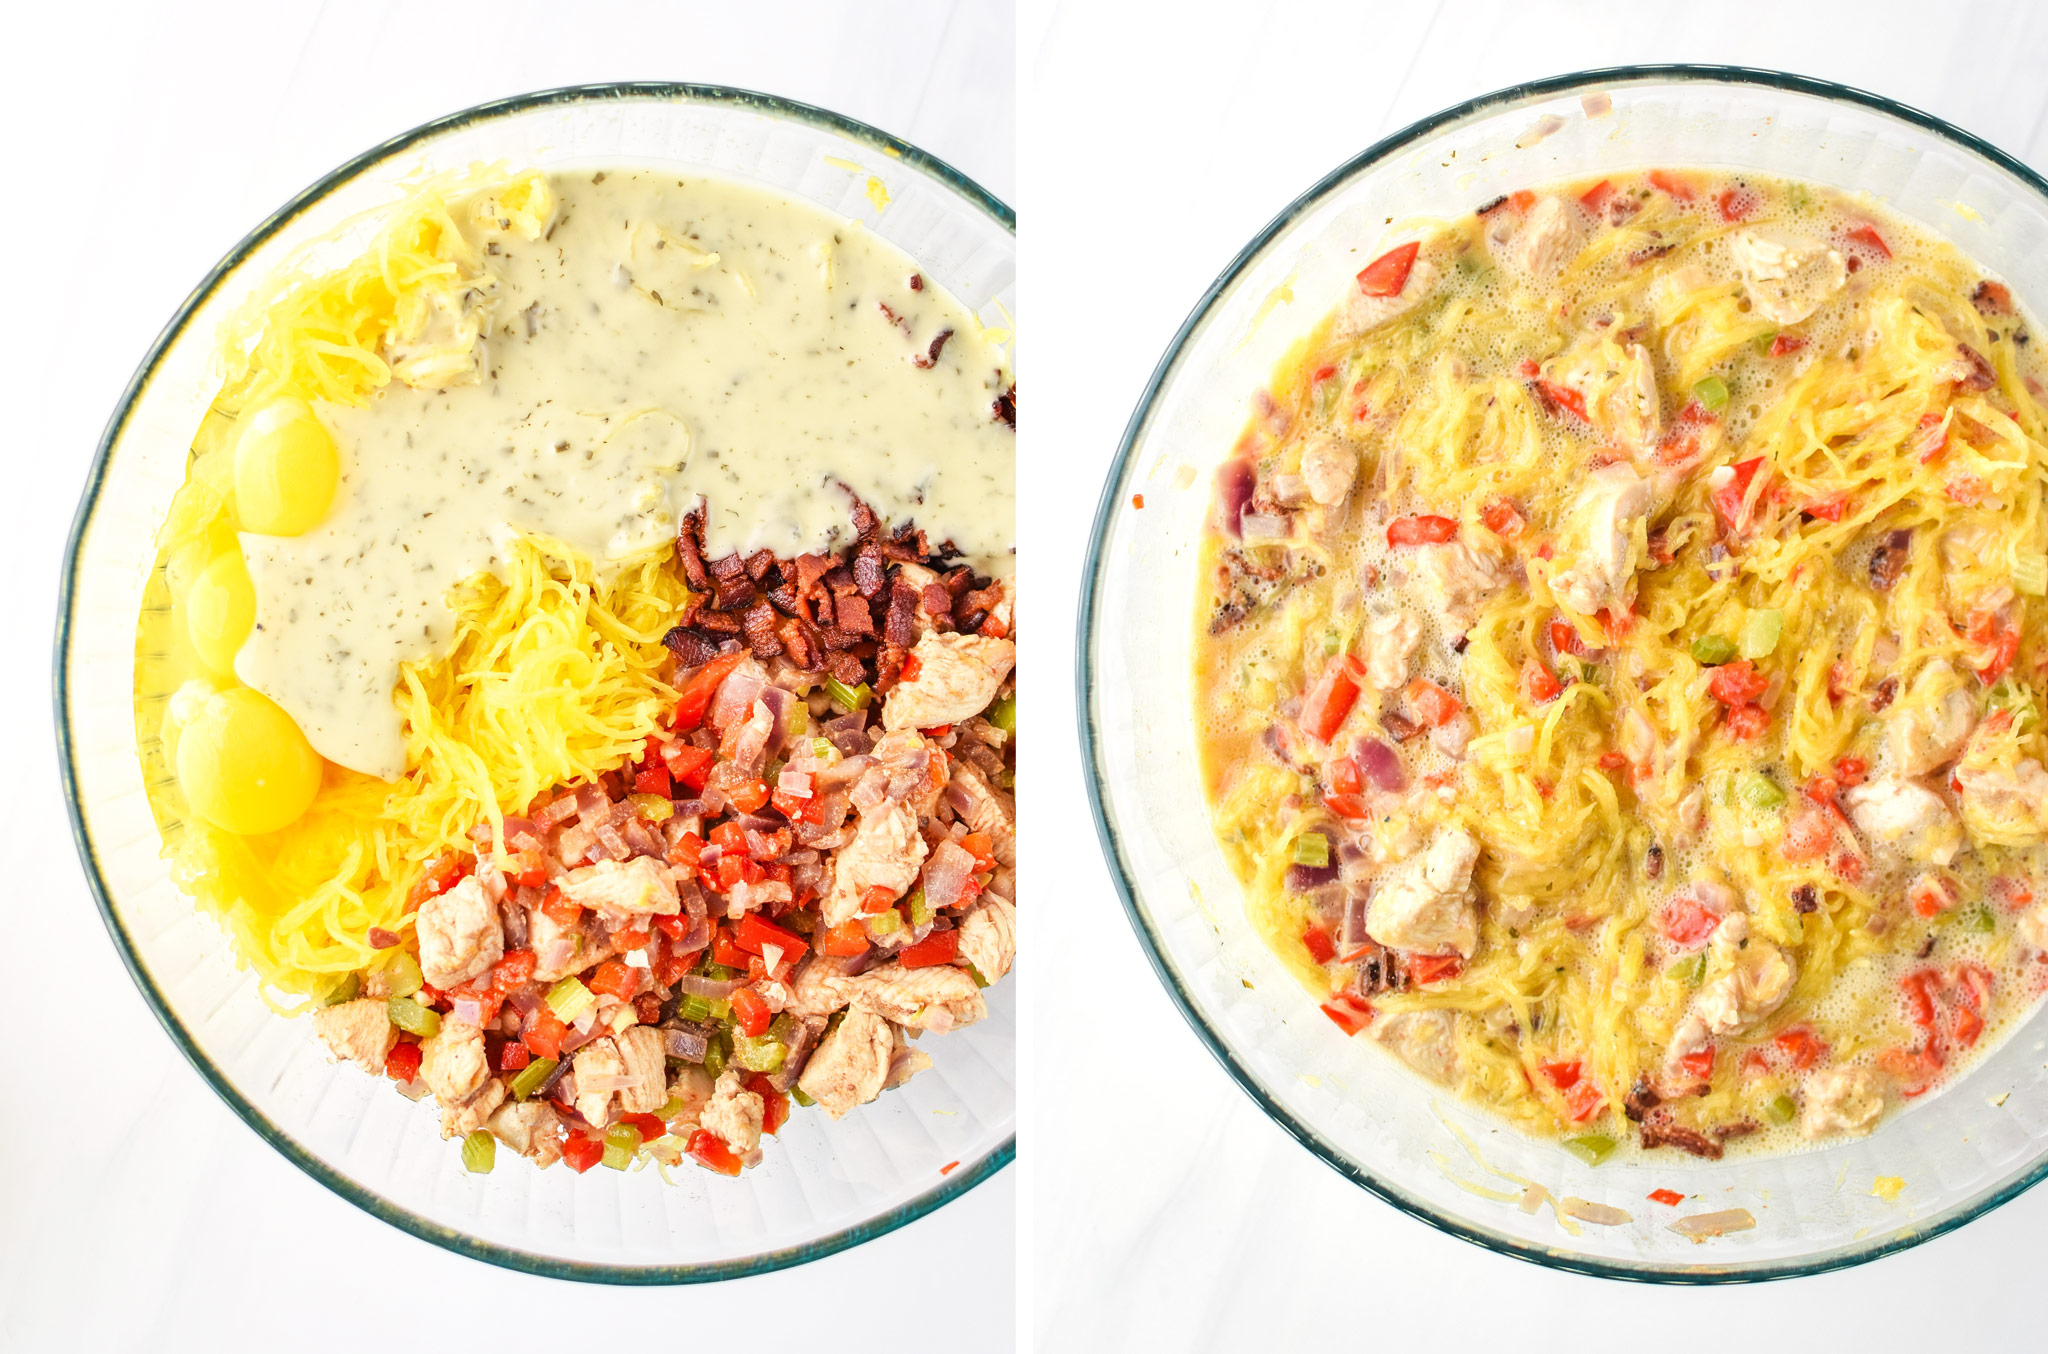 Left: Ingredients unstired for the Whole30 Chicken Bacon Ranch Casserole. Right: All the ingredients stirred together.